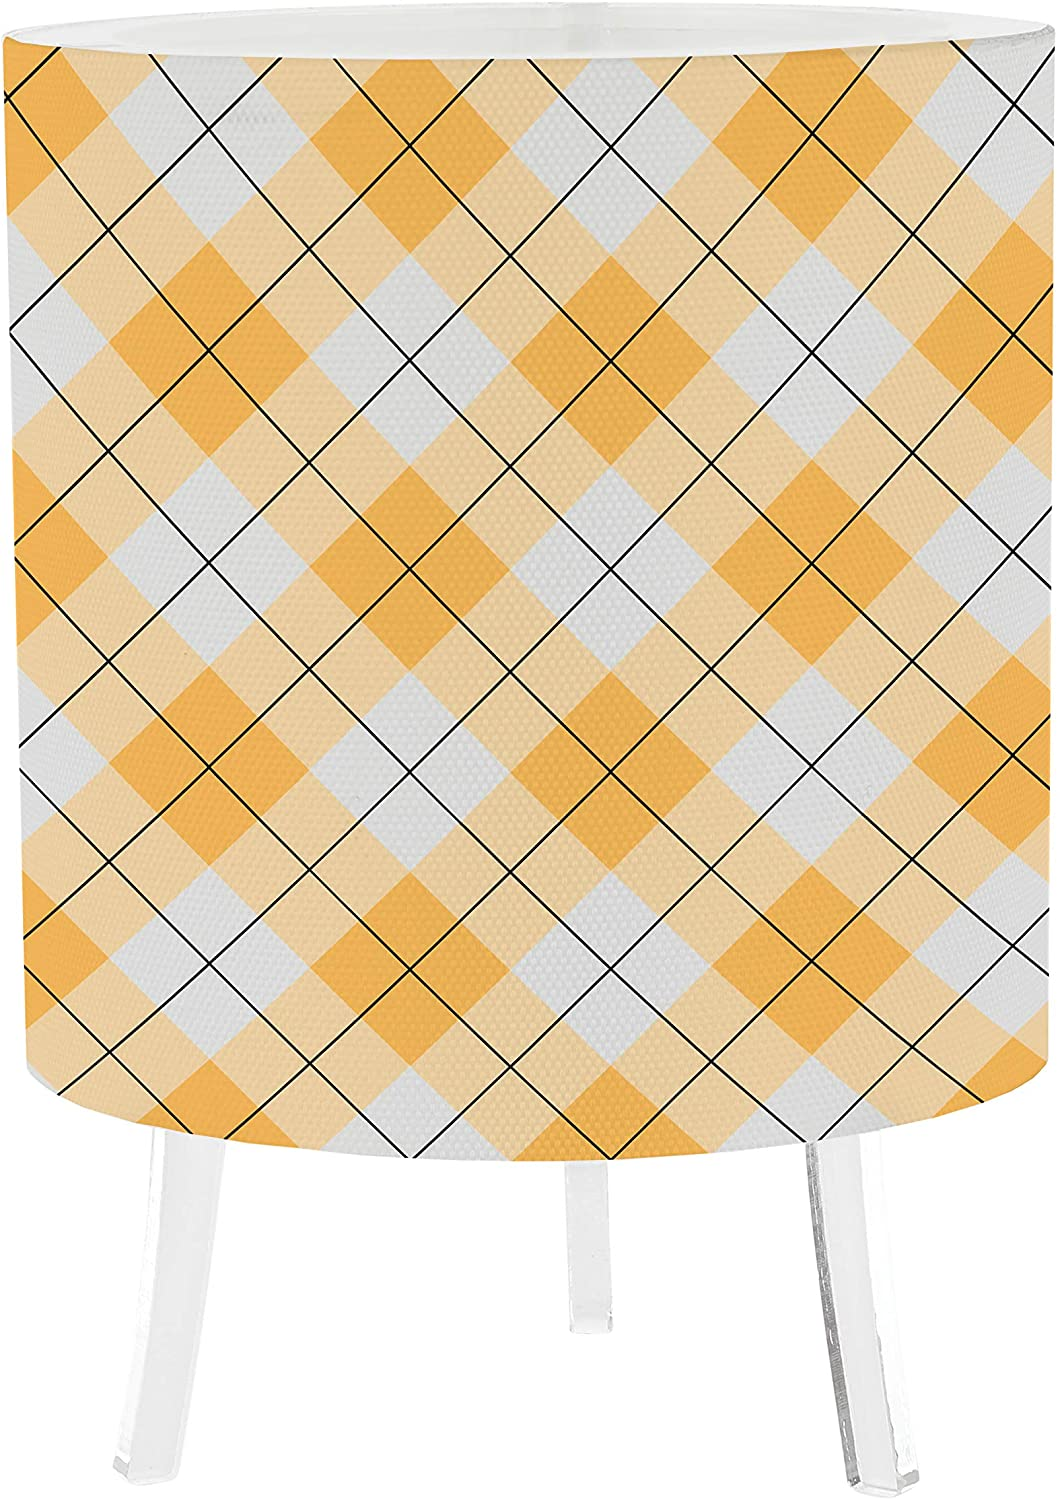 5x7 Inch Desk Lamp - Argyle Orange Custom Canvas Printed Table Light 16 Colors - 5 Level Dimmer - 4 Lighting Effects - Rechargeable Light - Remote Control. by LampPix Made in The USA.